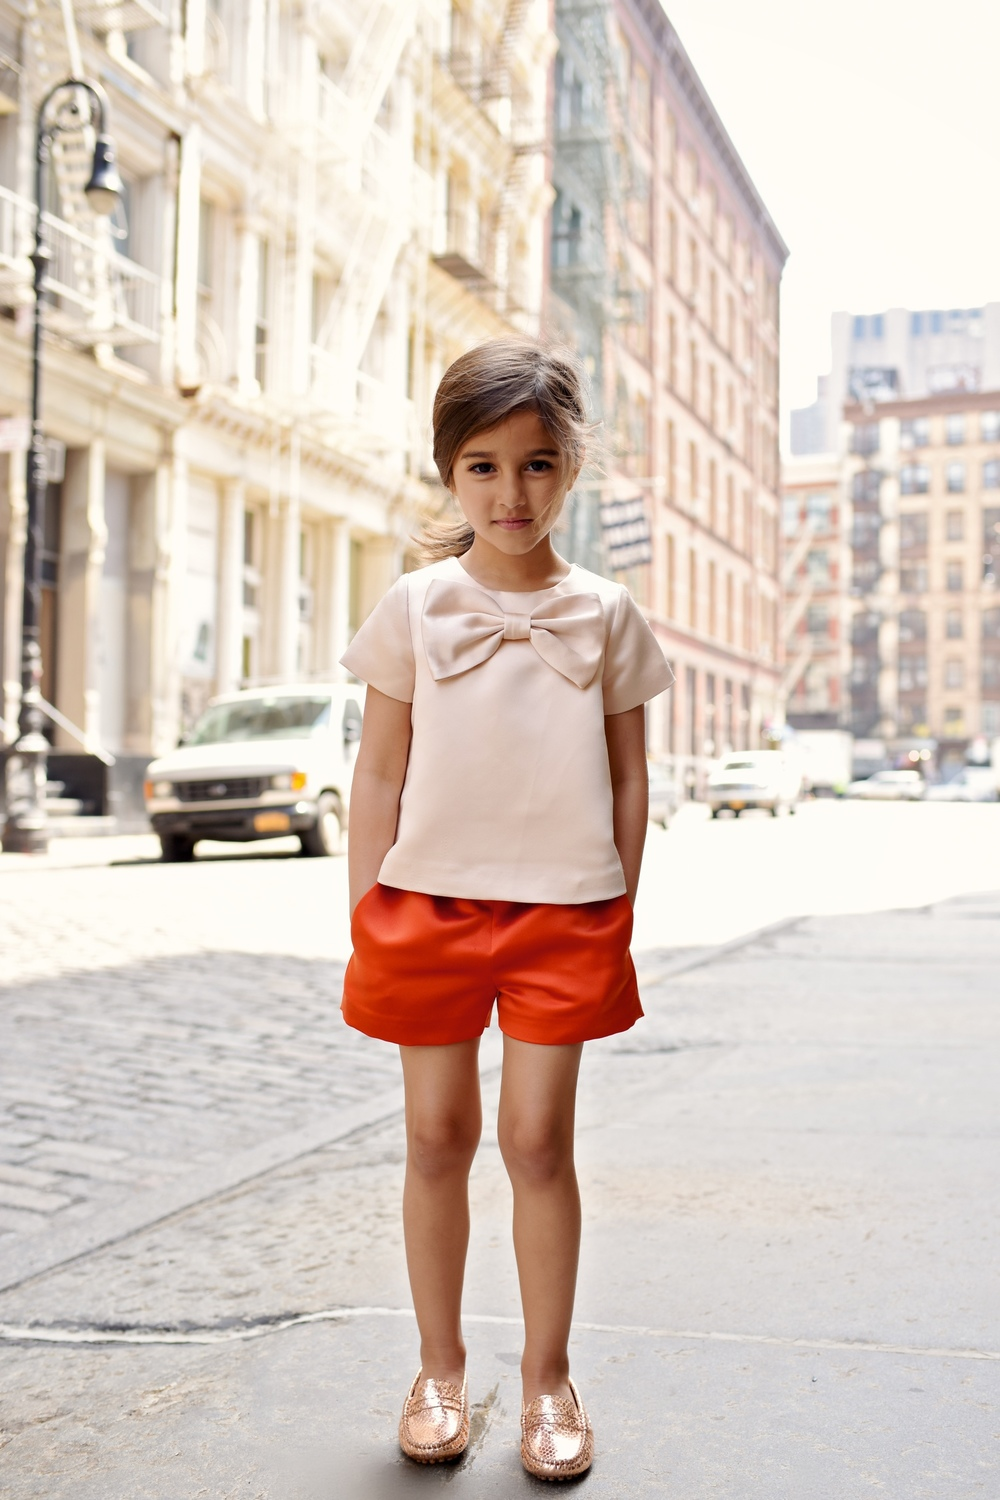 Enfant+Street+Style+by+Gina+Kim+Photography+Hucklebones.jpeg